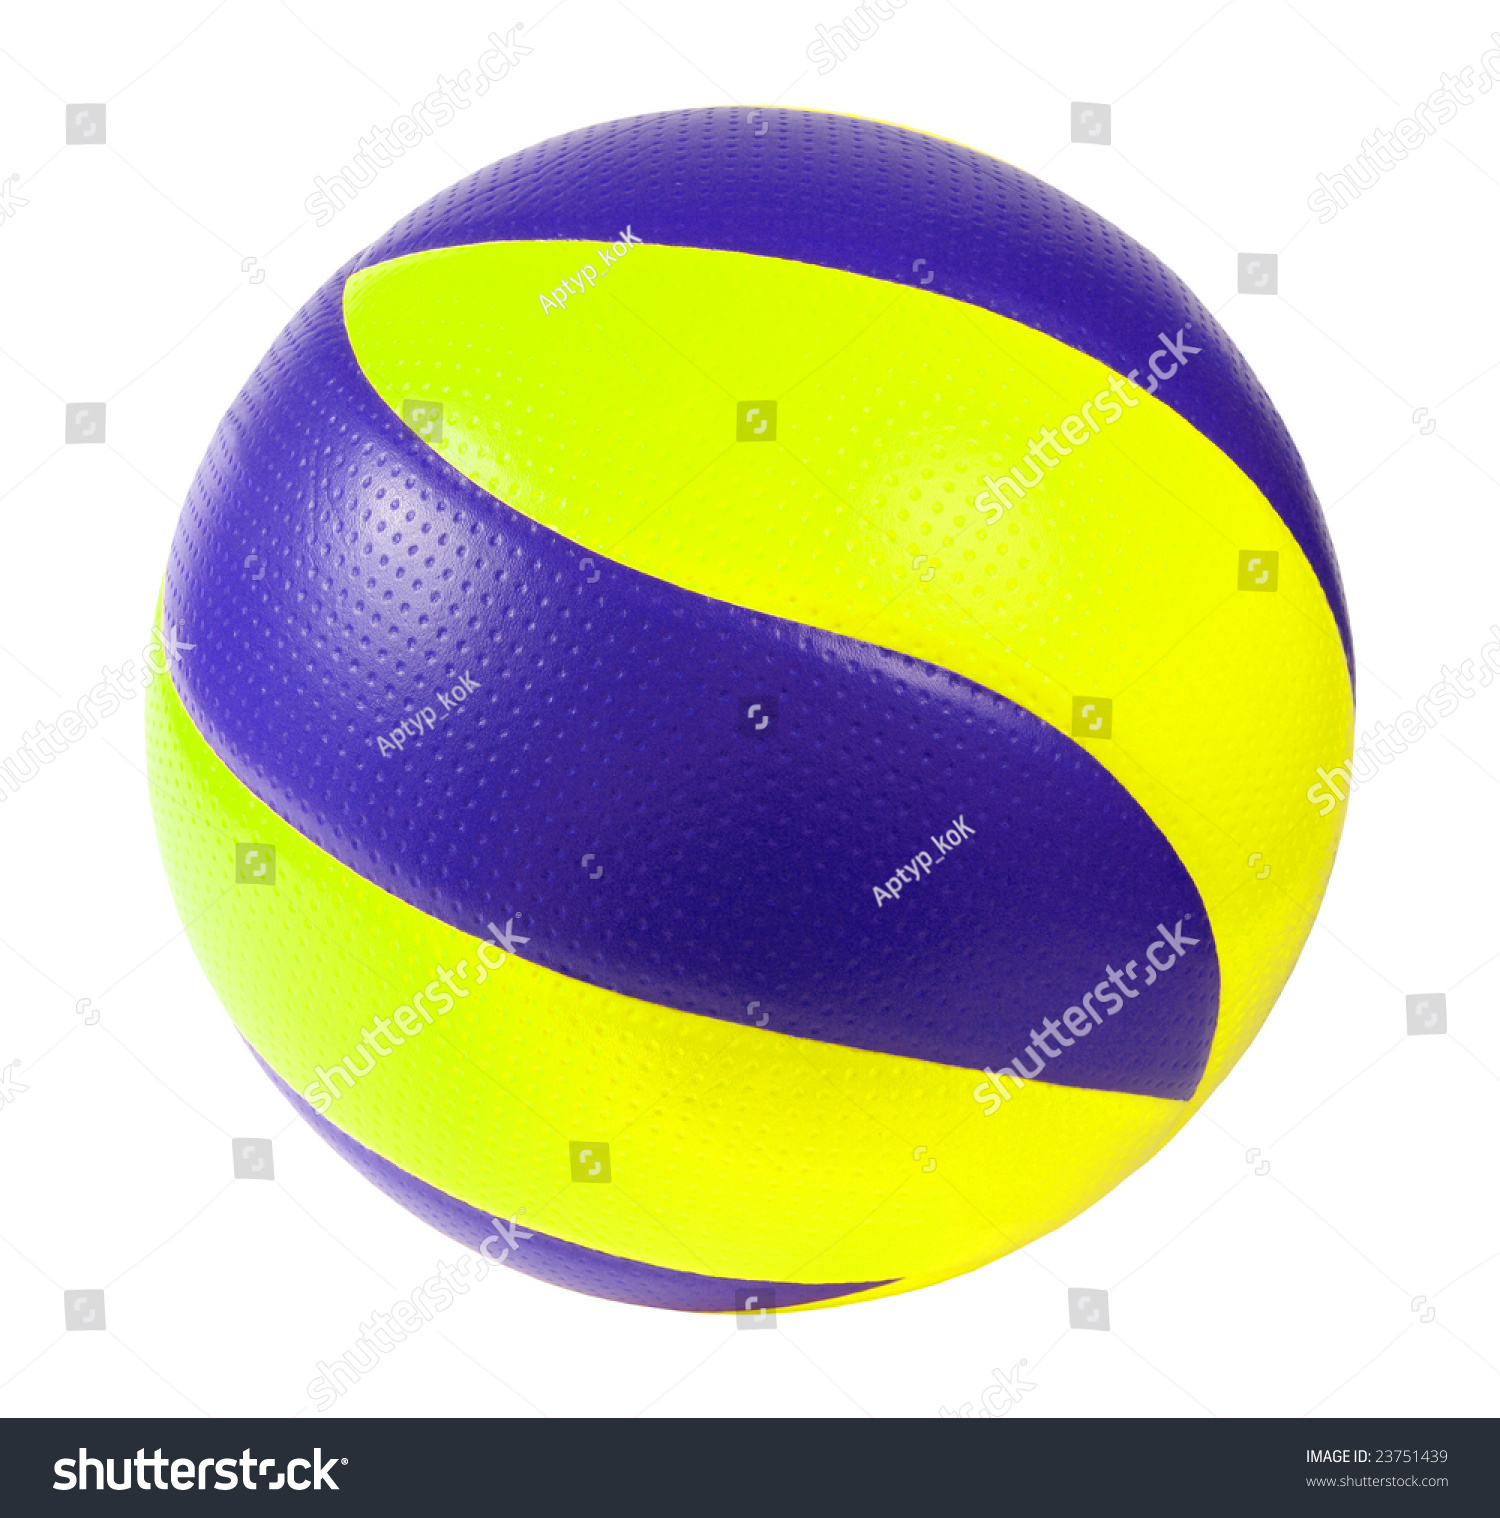 dark blue and yellow soccer ball on a white background